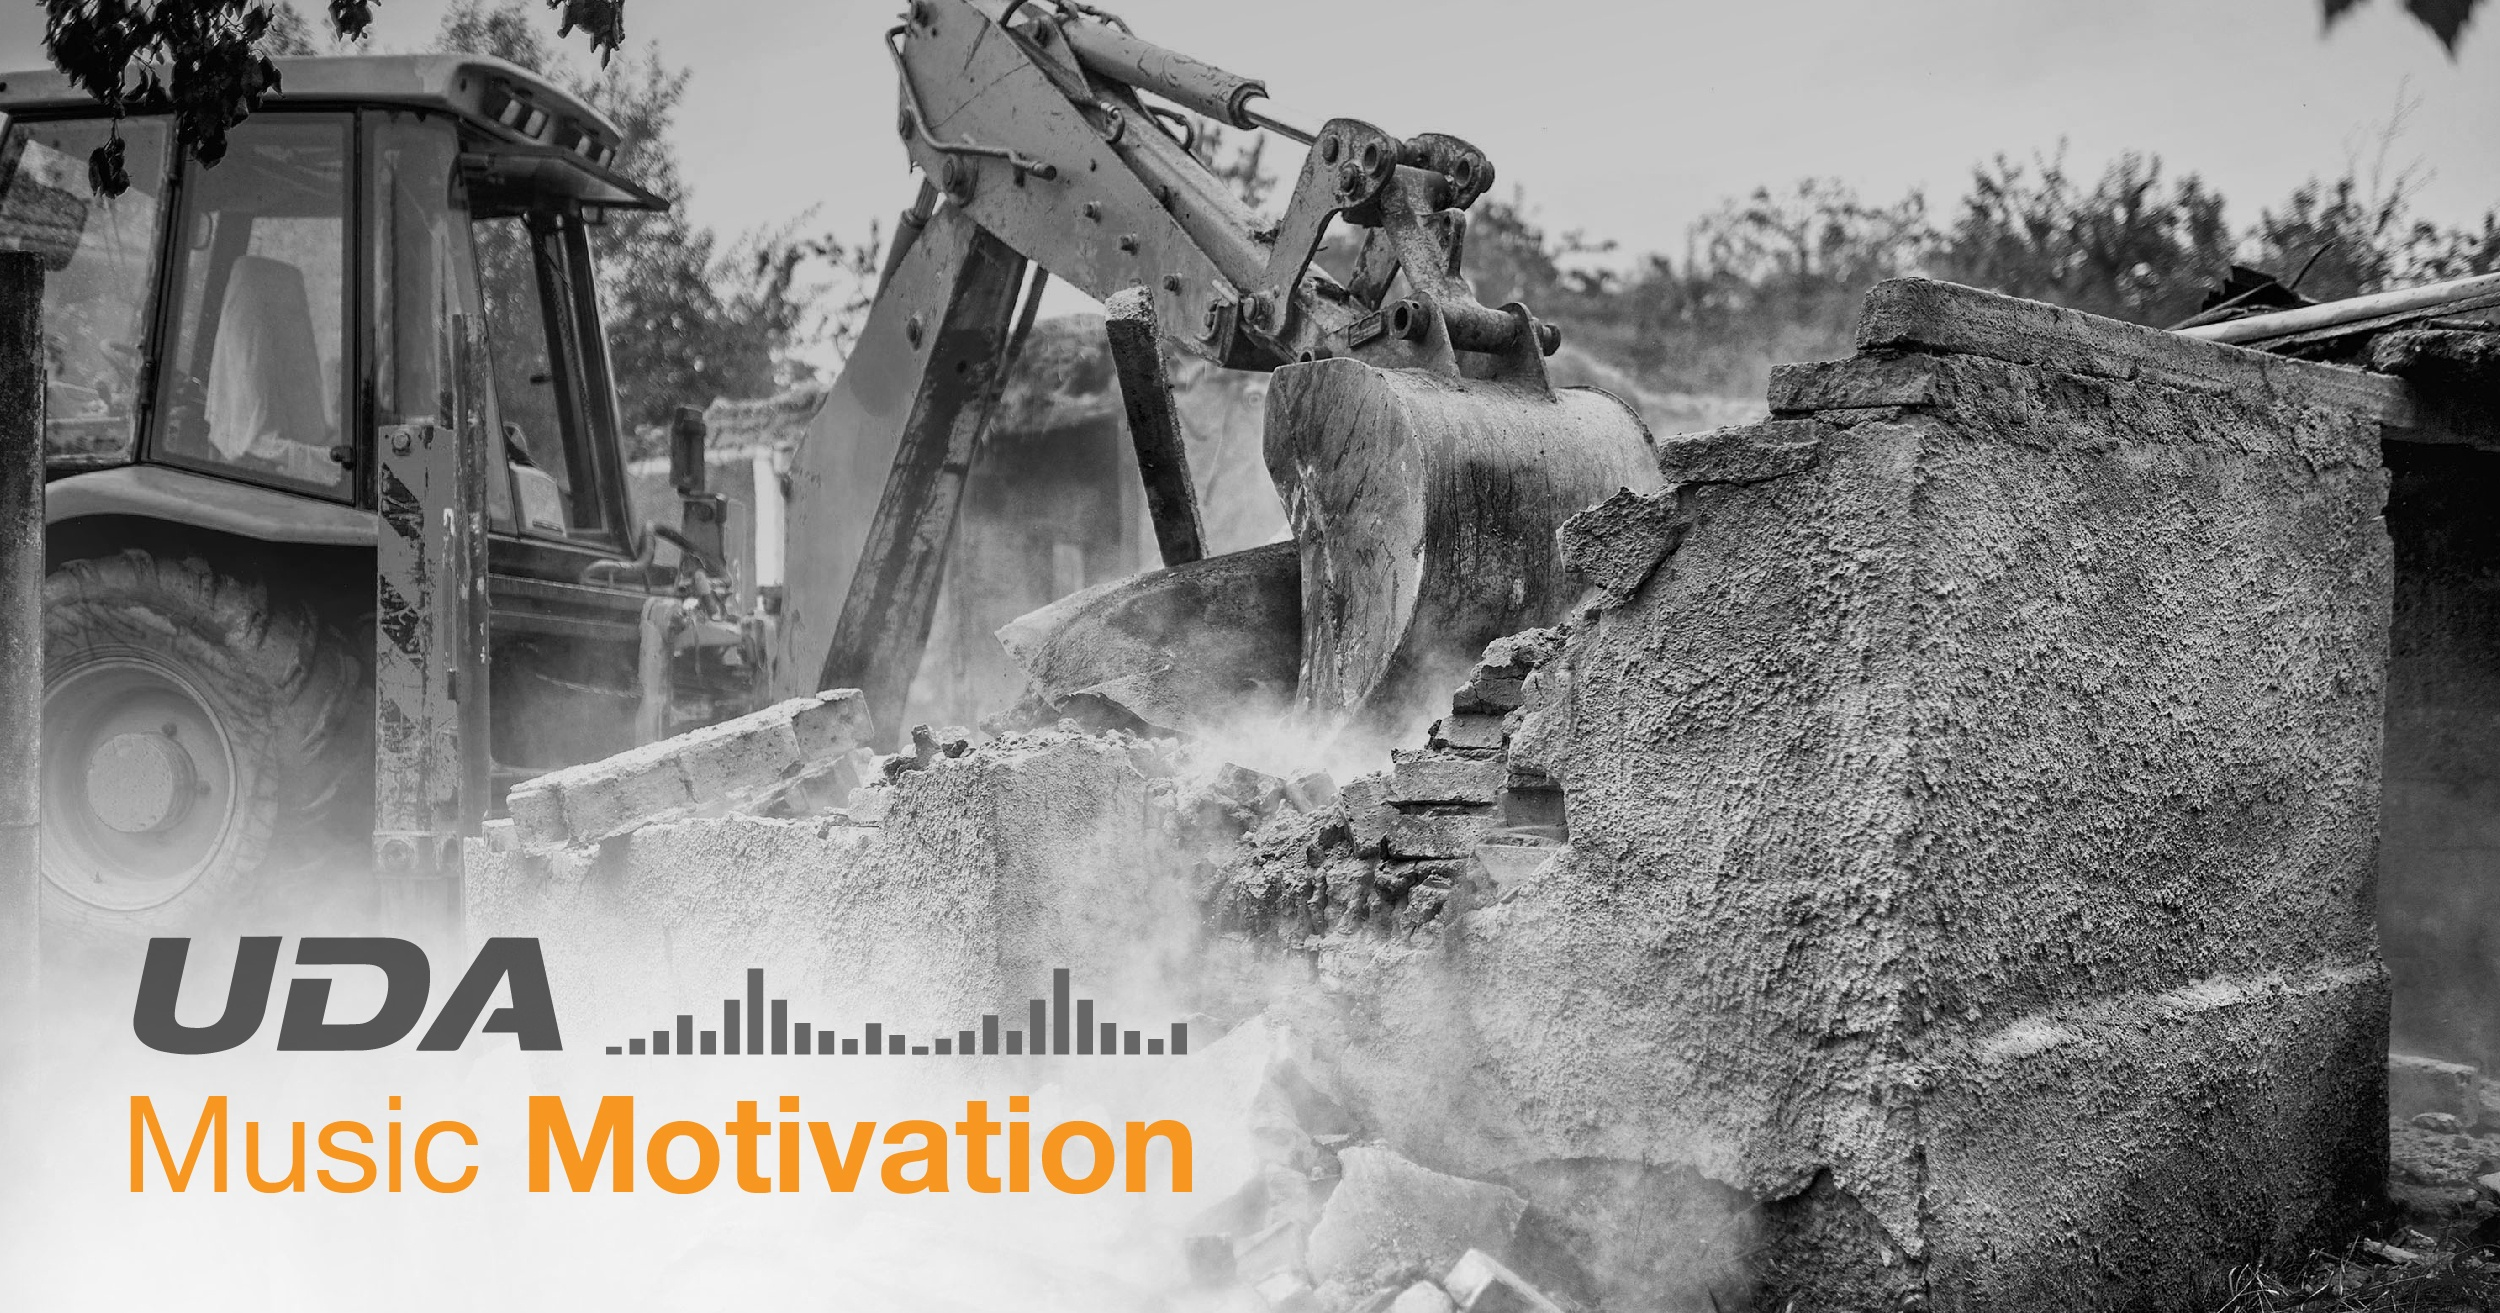 Music Motivation: Demolition Day